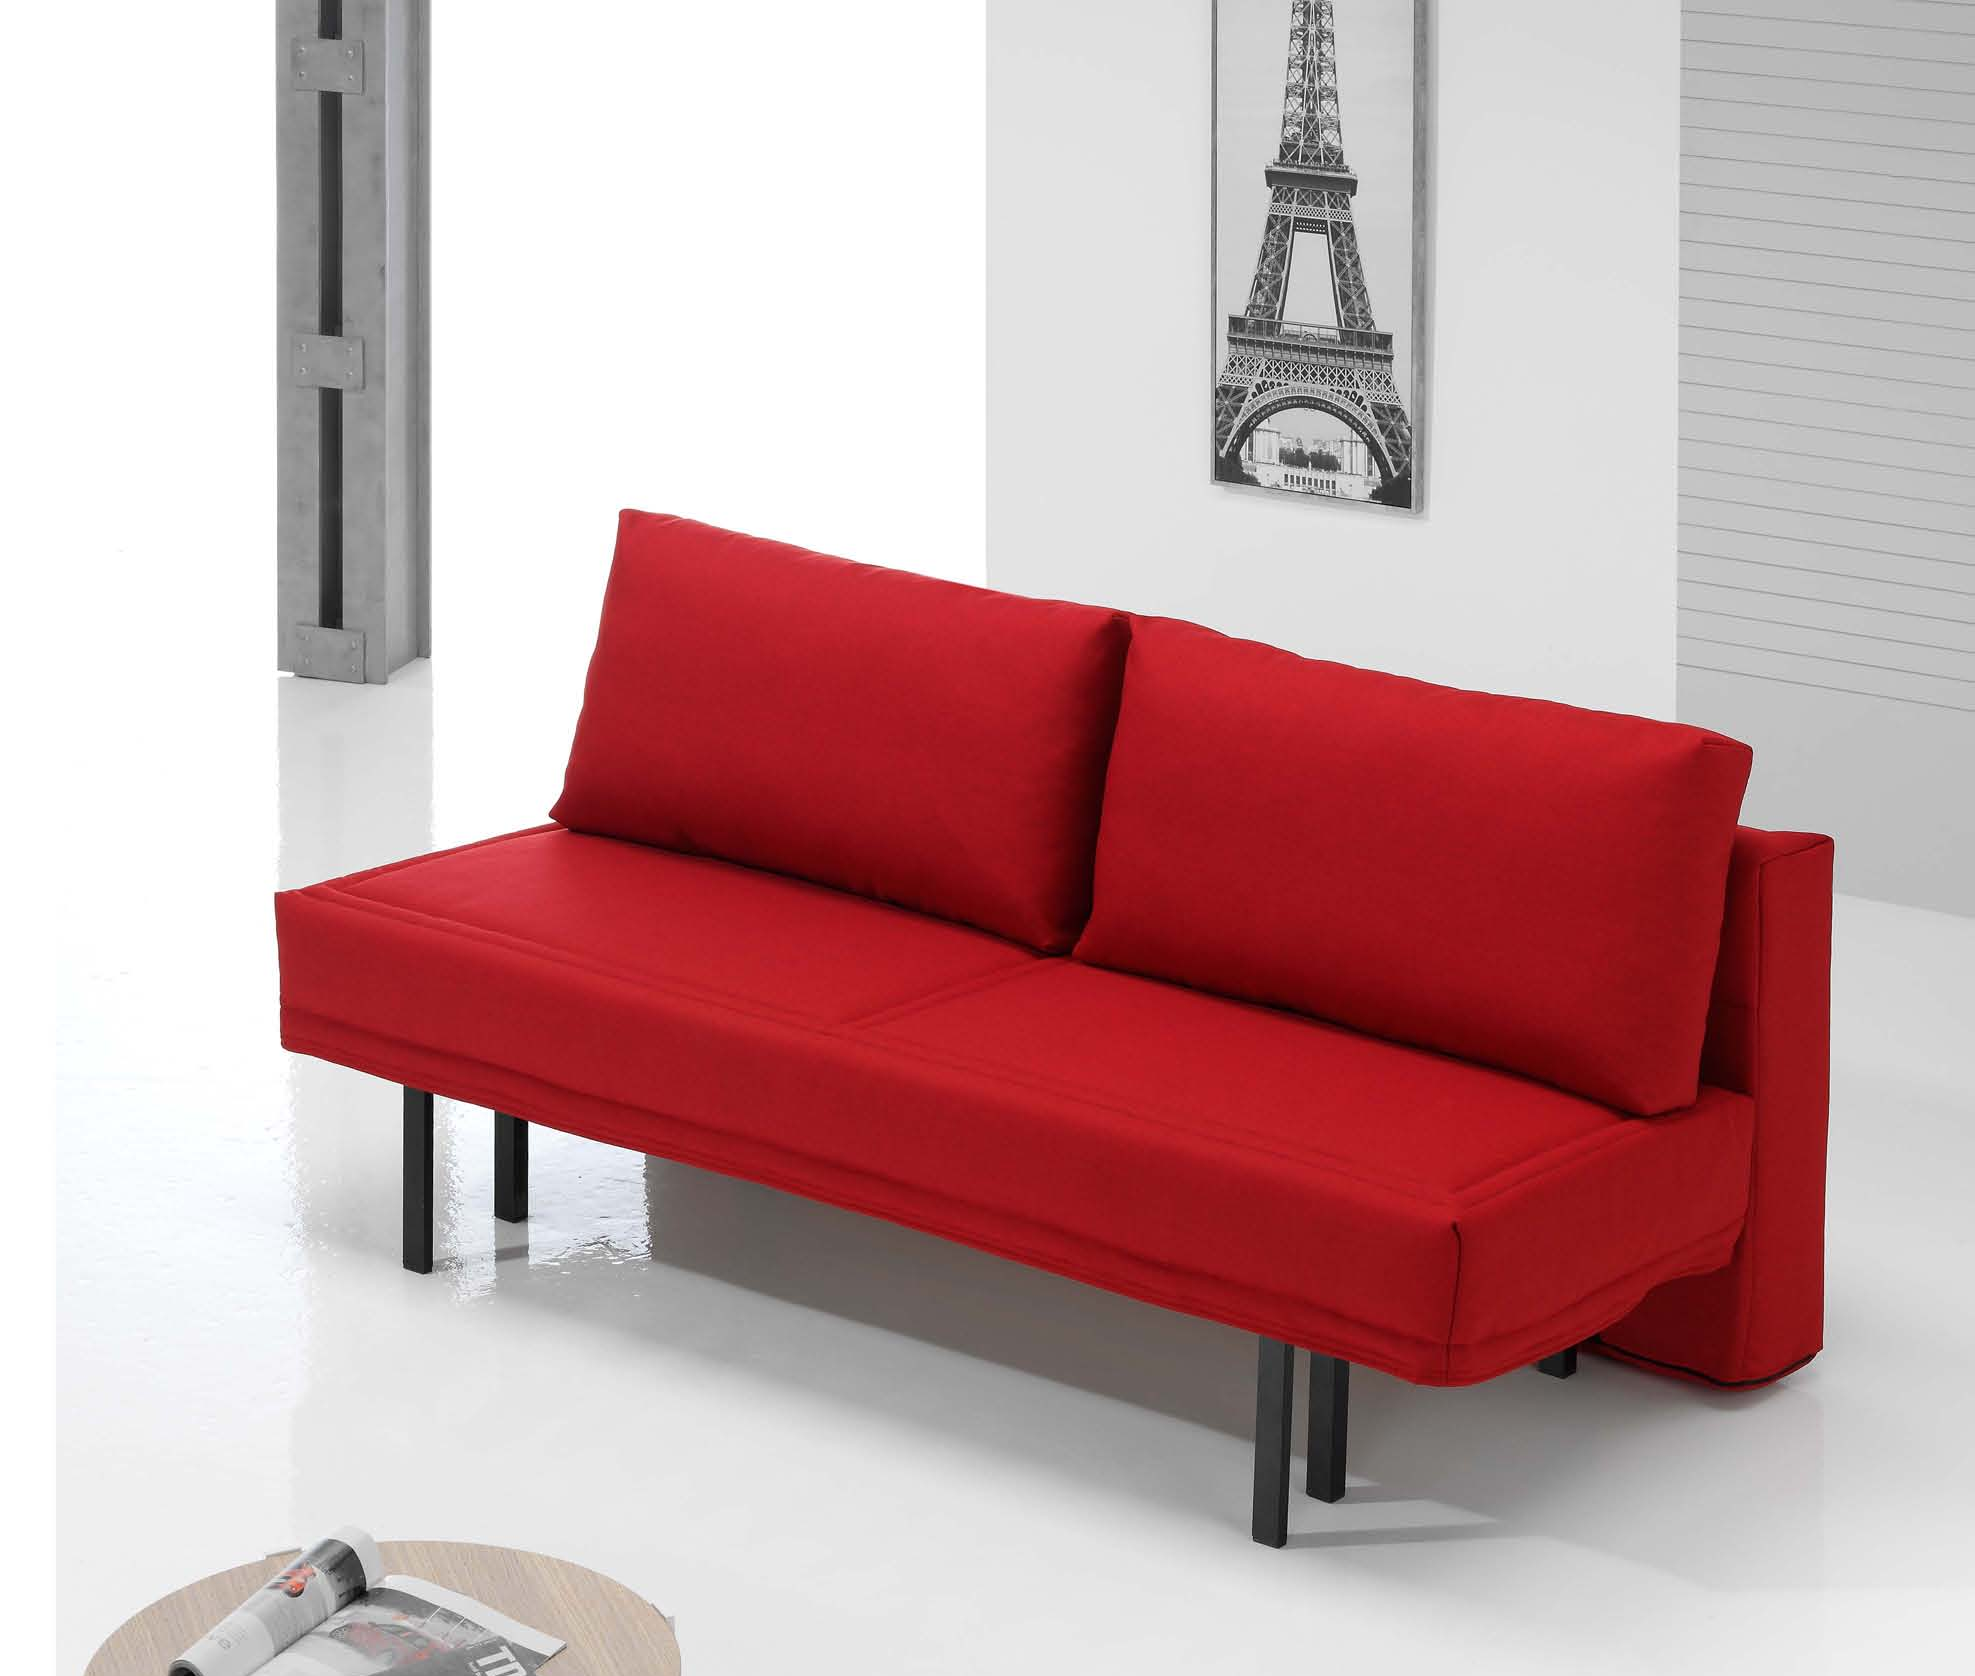 Sofa cama chaise longue madrid sof de tela ares de home for Sofa cama modernos